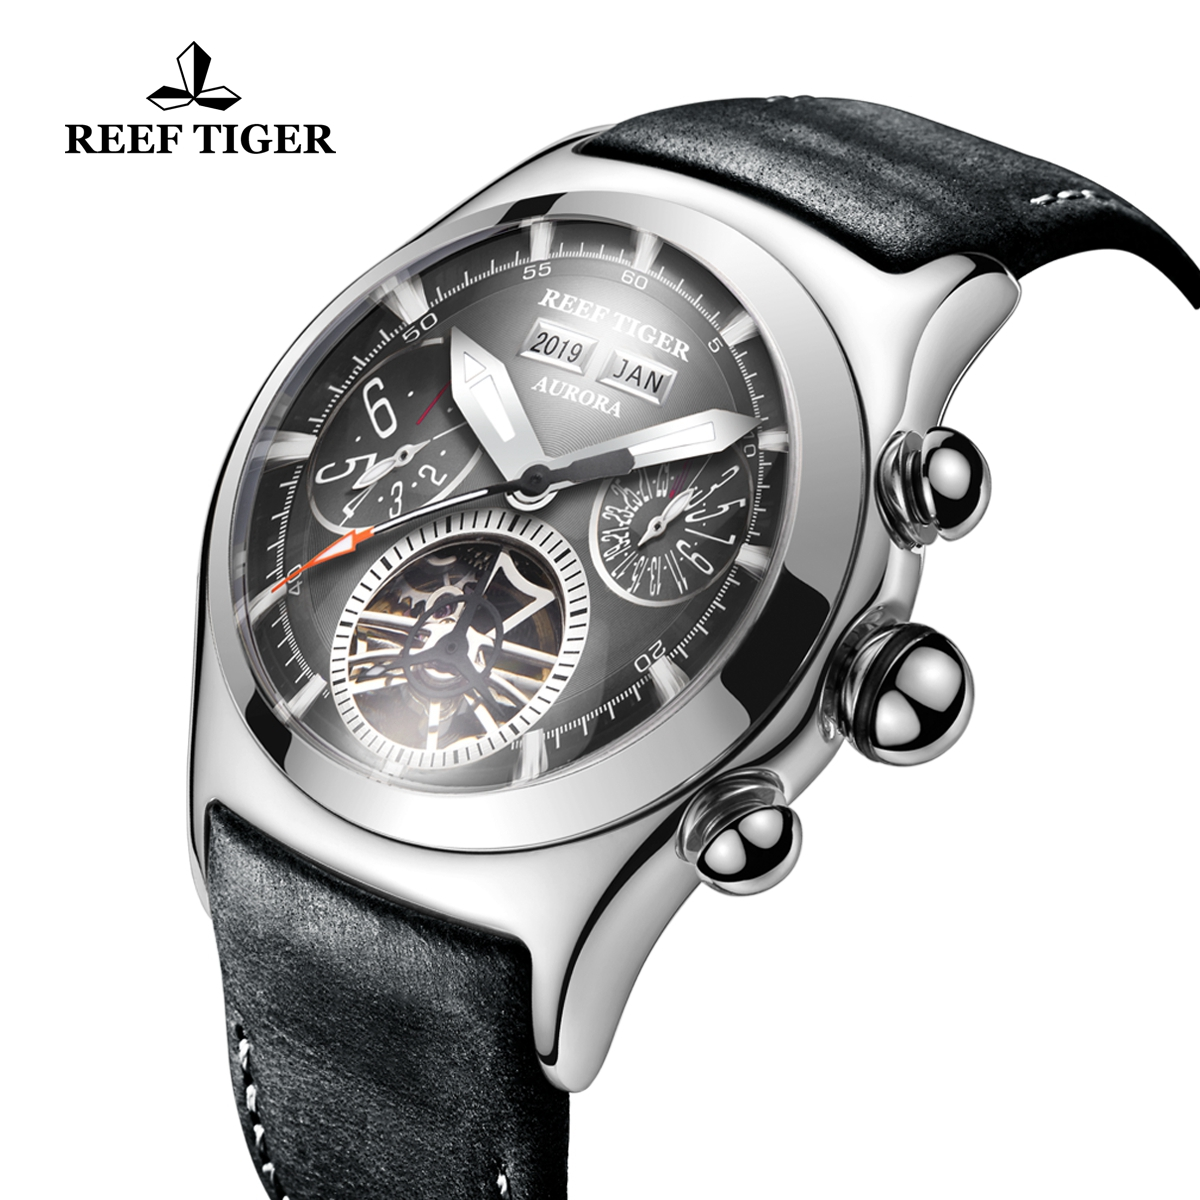 Reef Tiger Air Bubble II Sport Fashion Watches For Men Automatic Watch Steel Case Leather Strap RGA7503-YBB